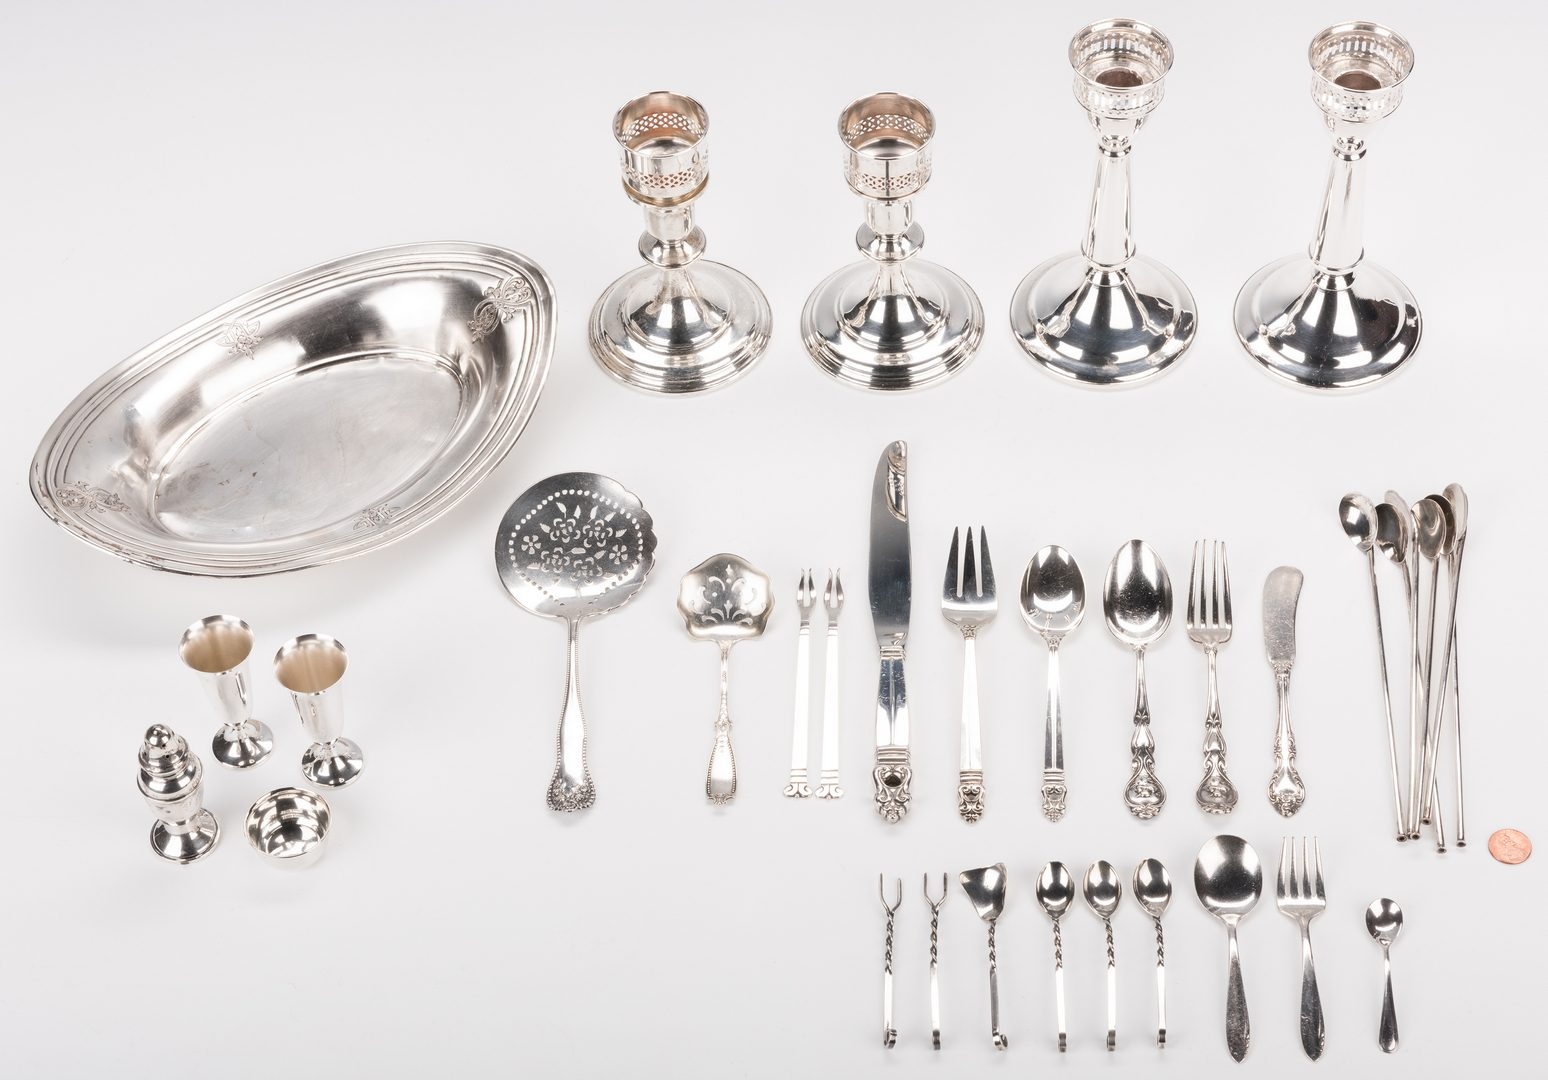 Lot 874: 35 pcs assd. sterling table items and flatware incl. candlesticks